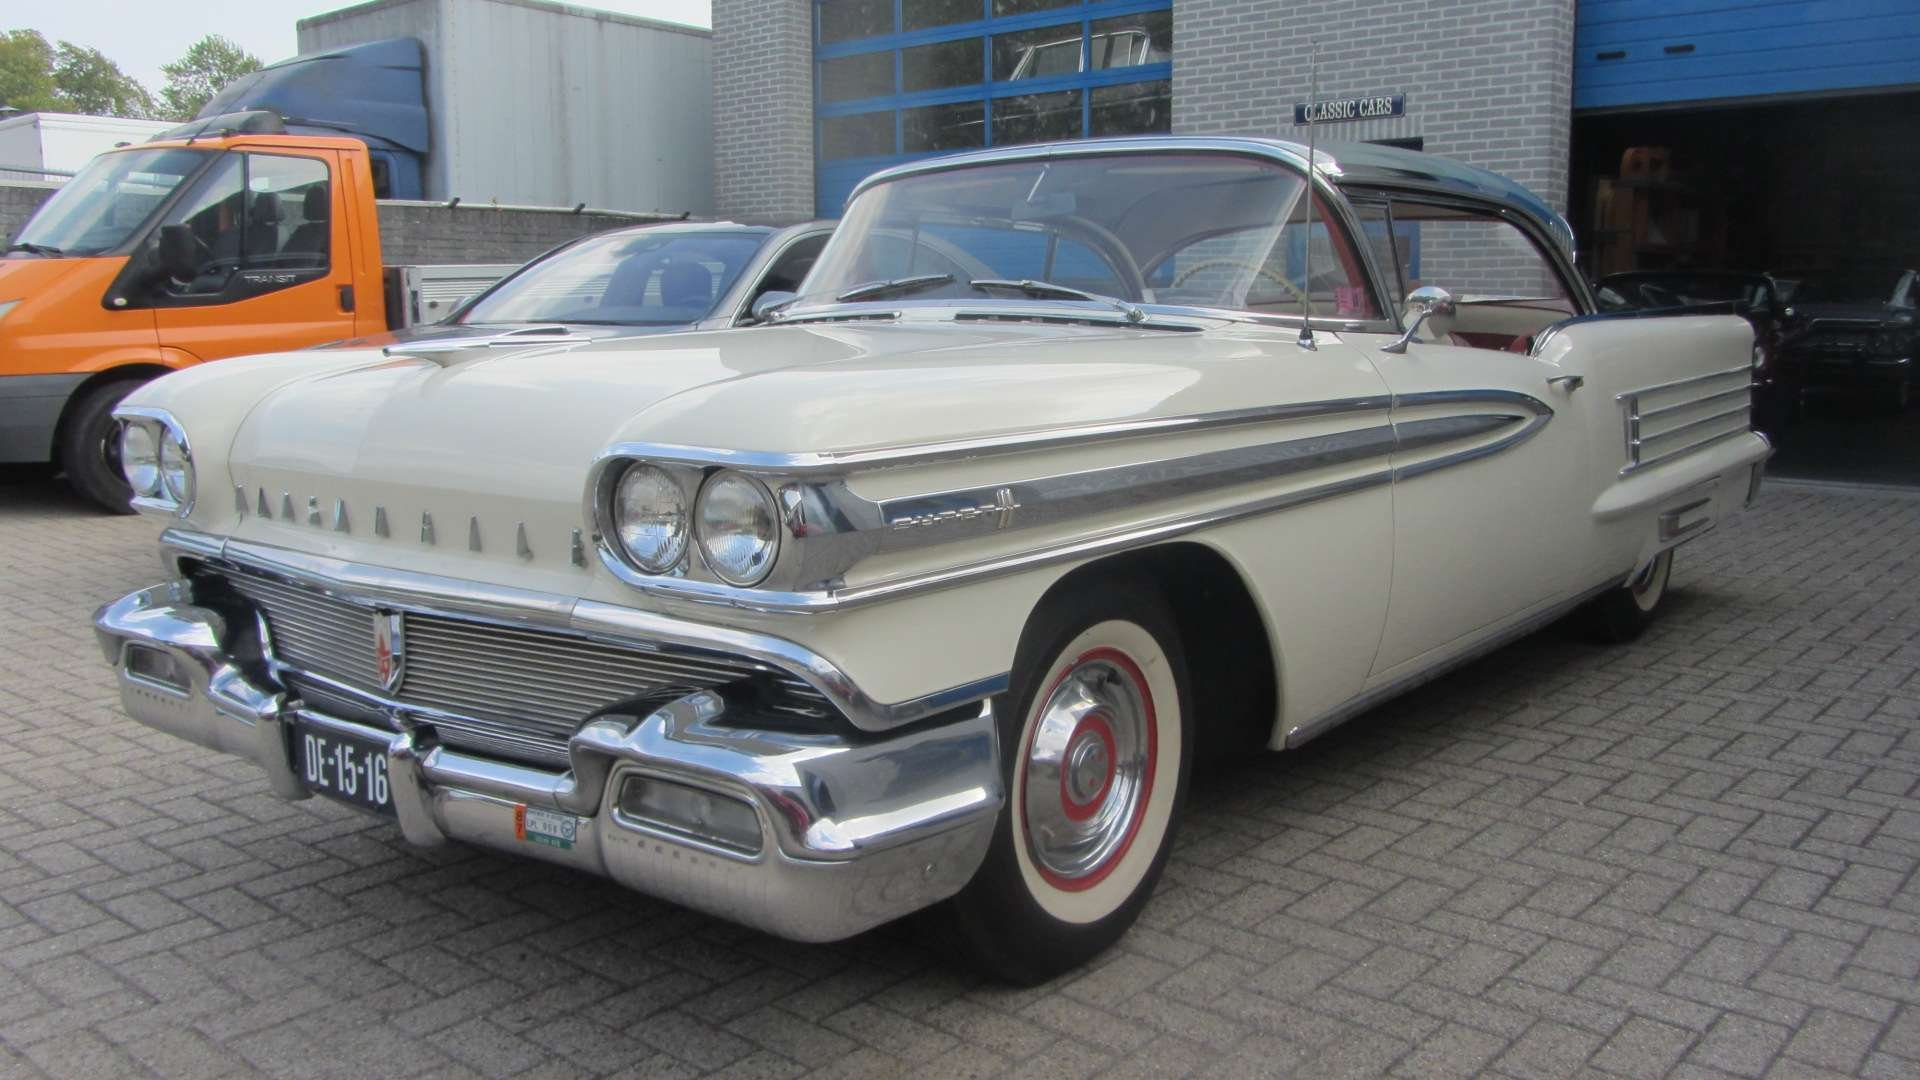 Oldsmobile Super 88 Coupe Nice Car 1958 & 50 USA Classics For Sale (picture 1 of 6)